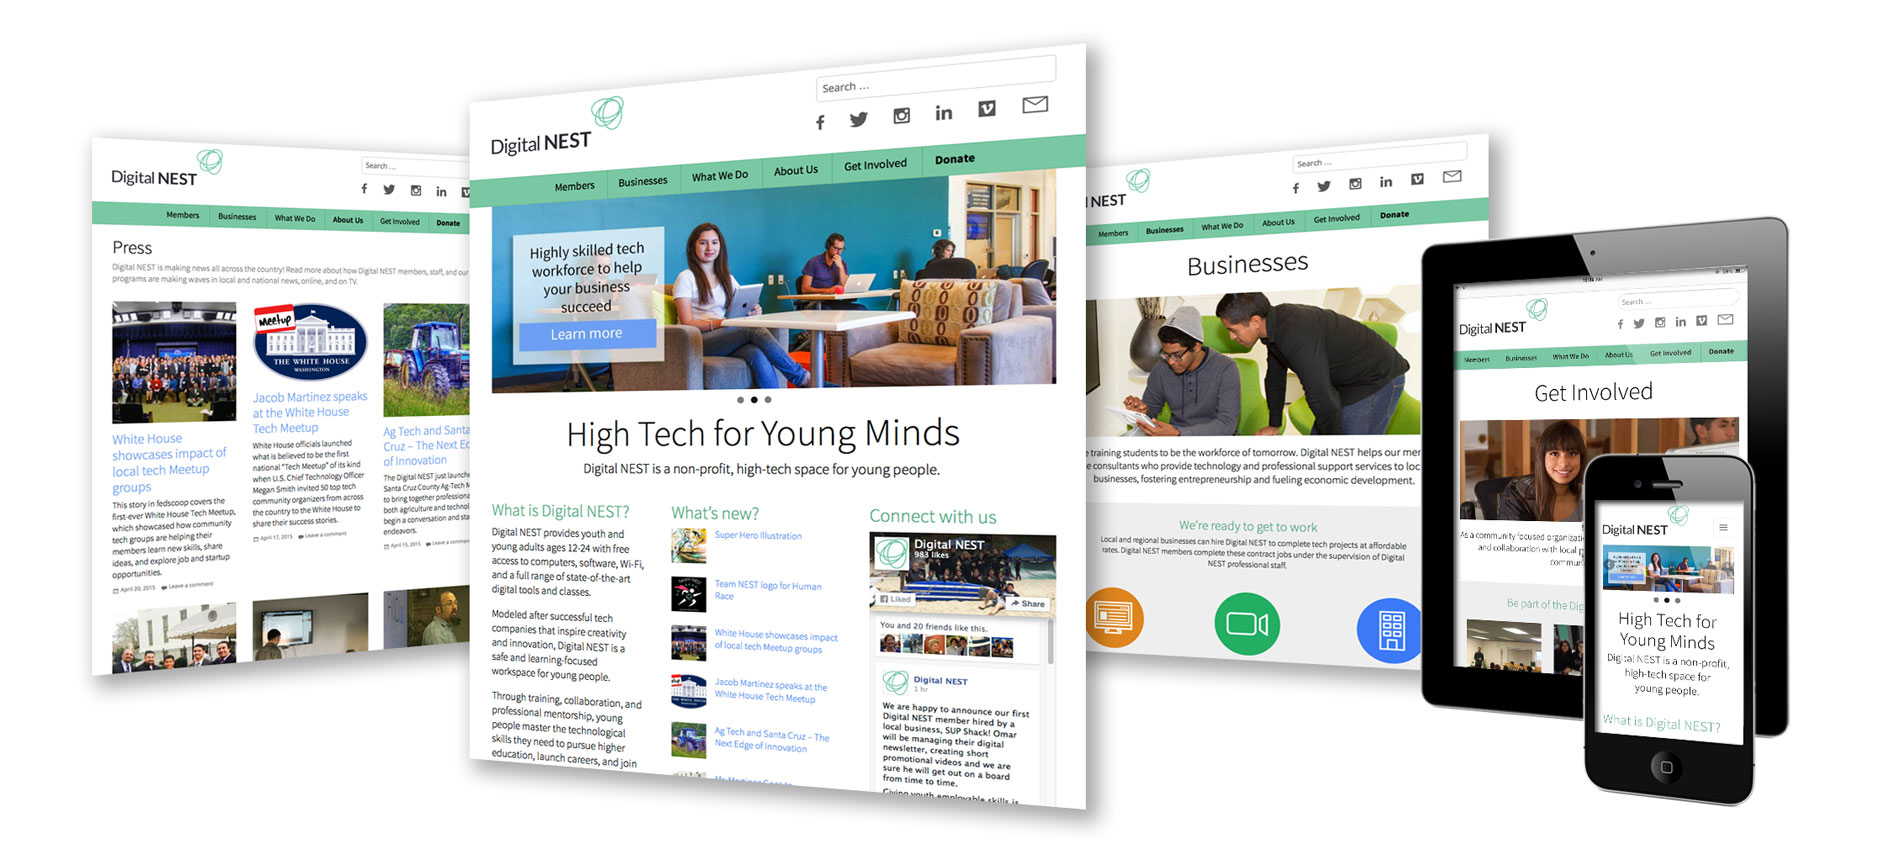 Non-profit education organization website redesign